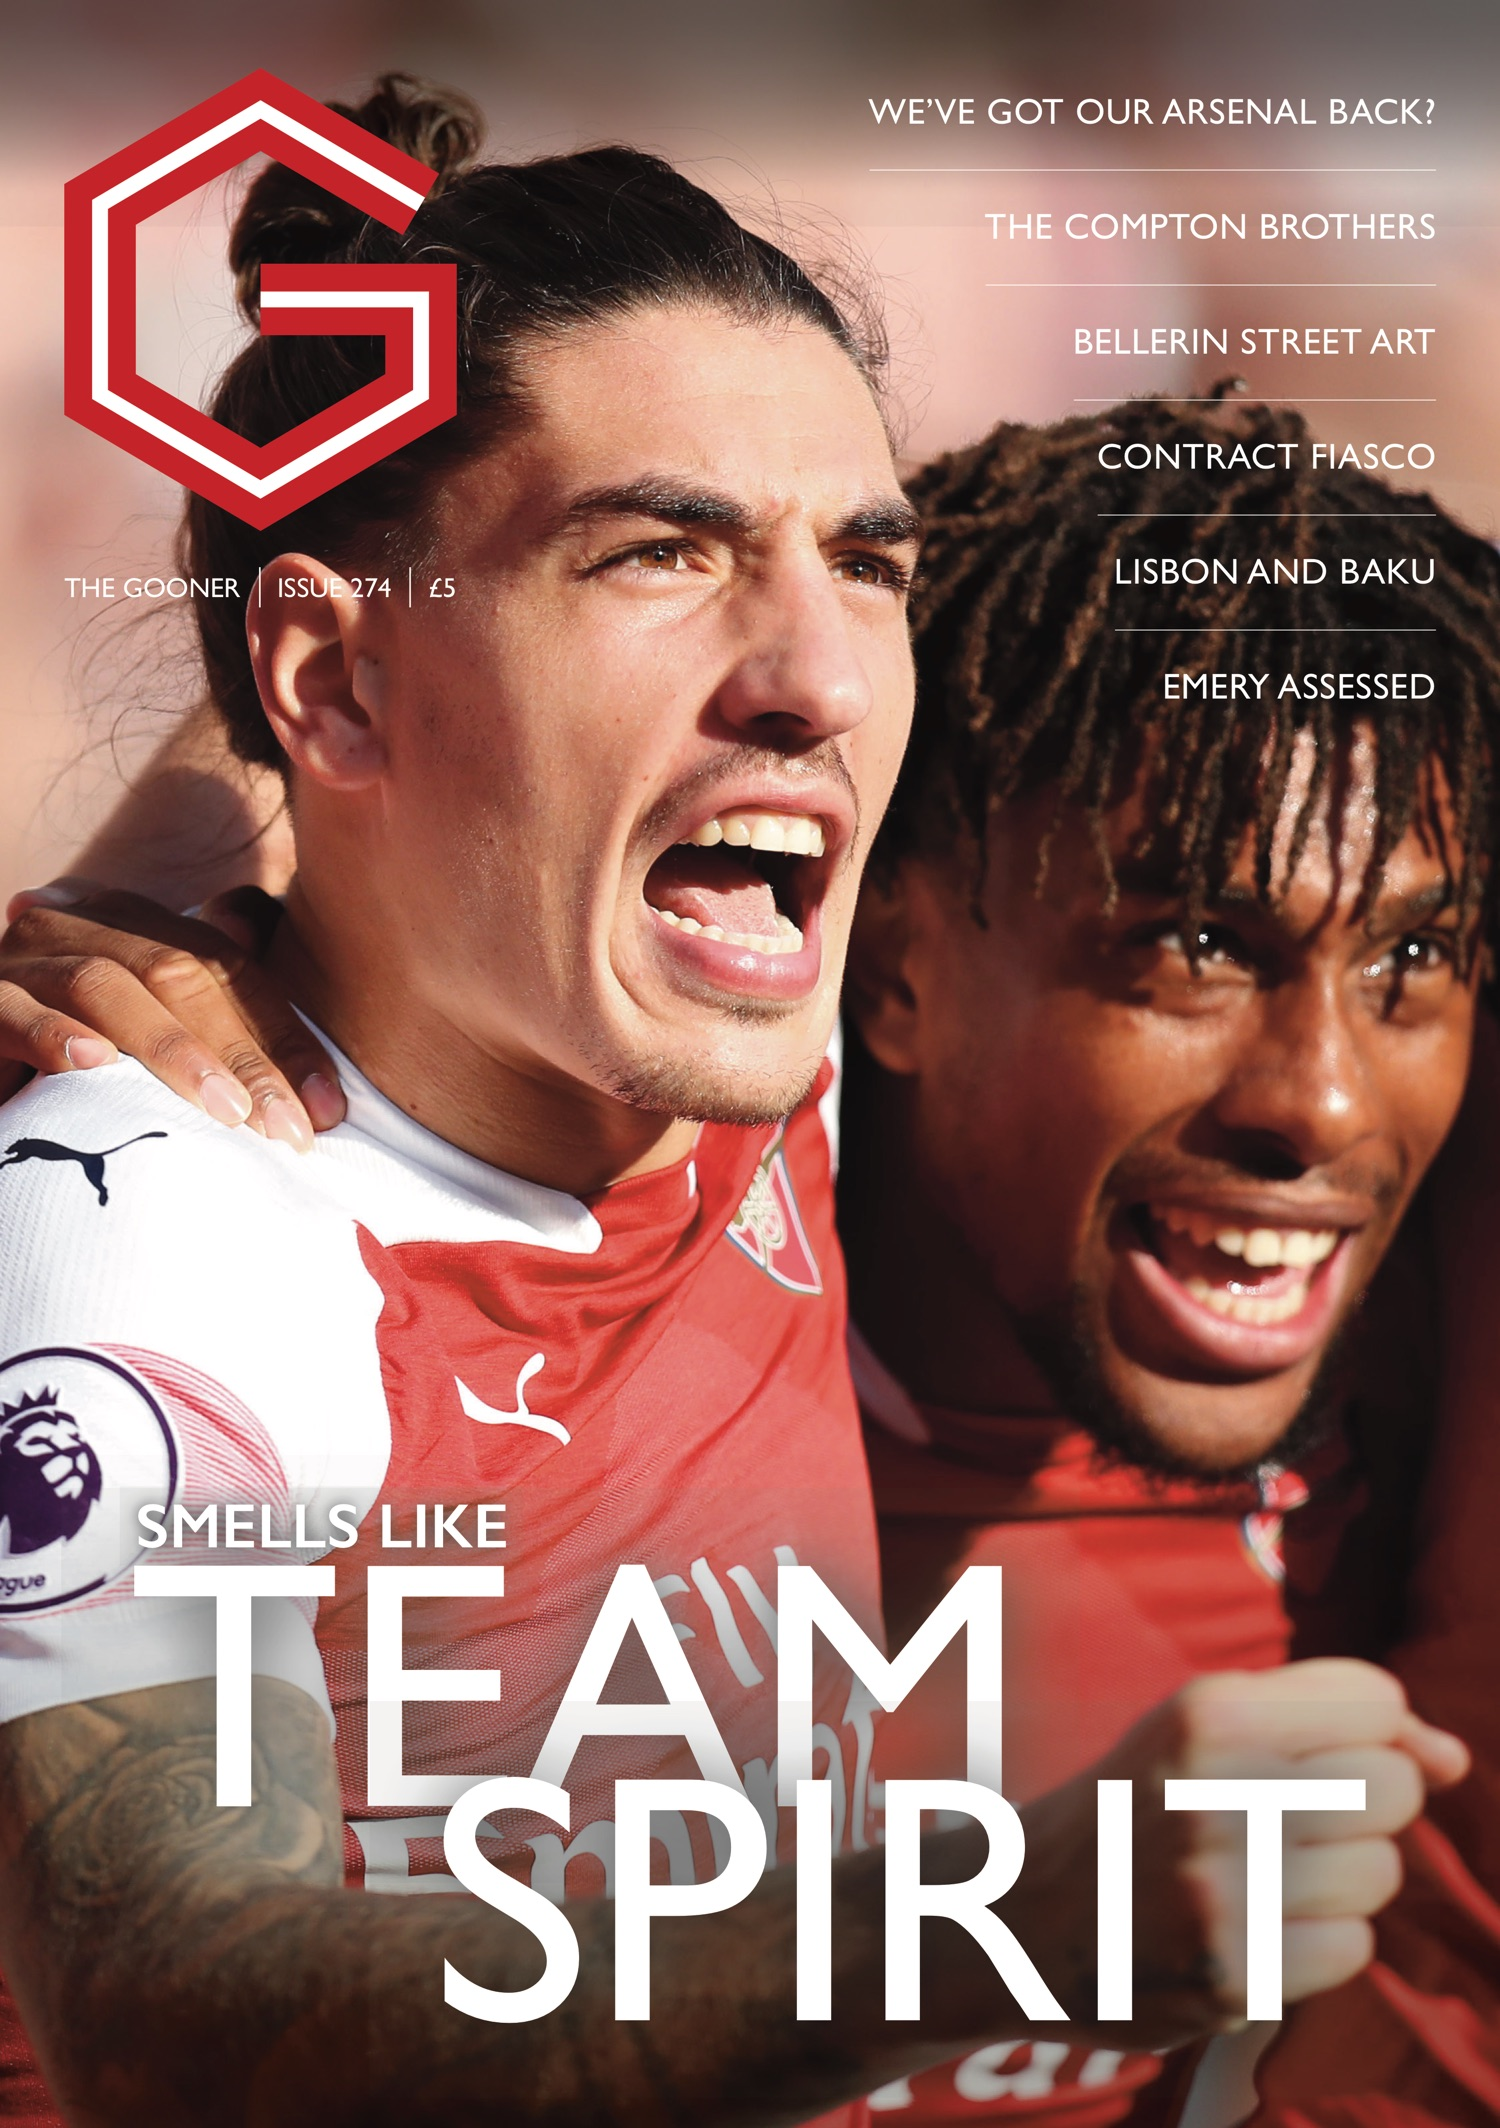 Current Edition Overseas – The Gooner Issue 274